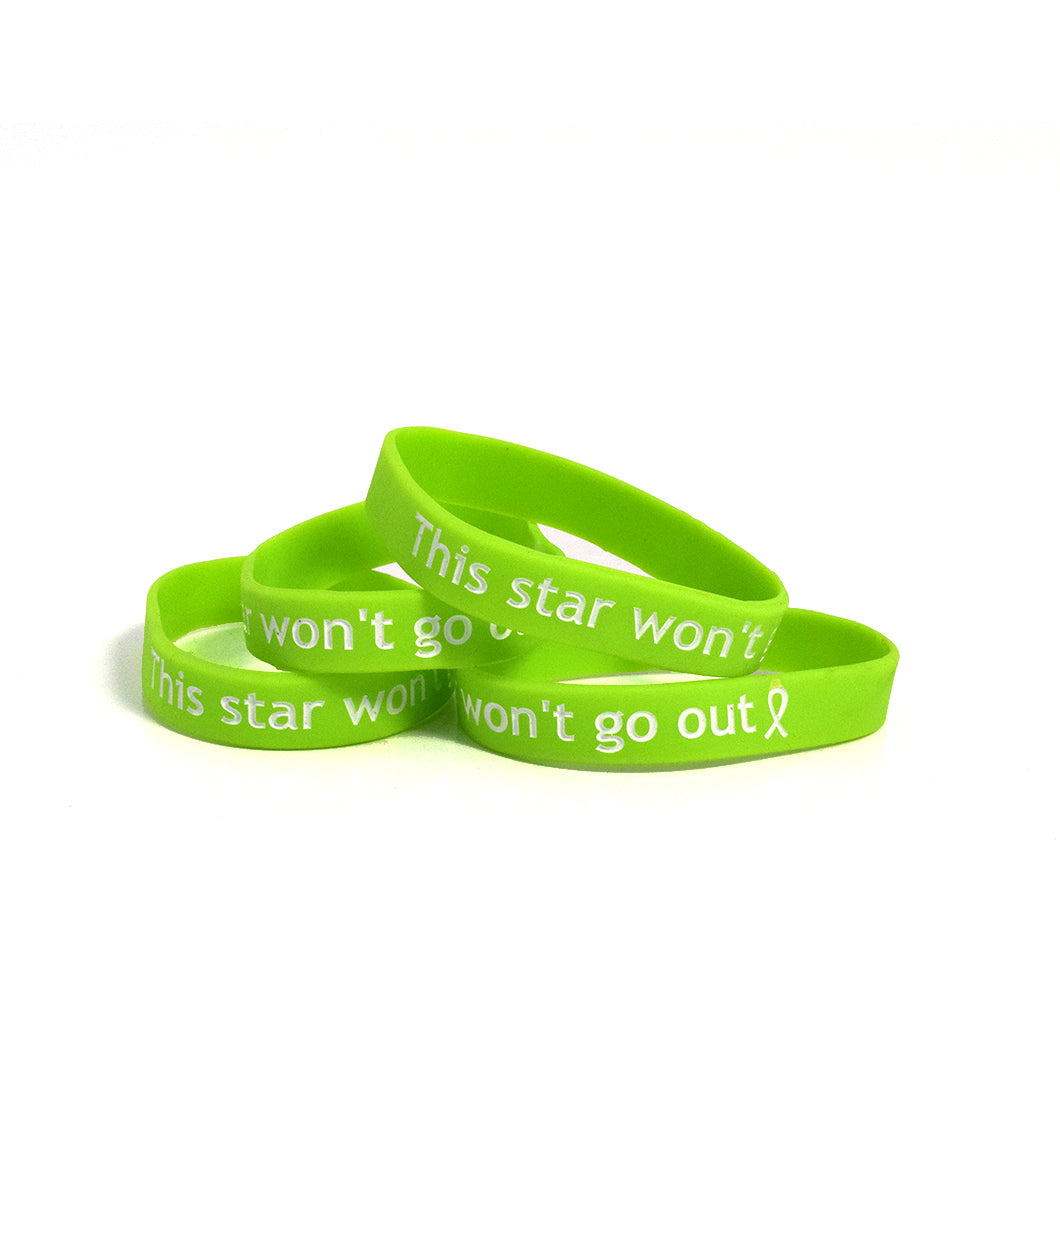 This Star Won't Go Out Wristband